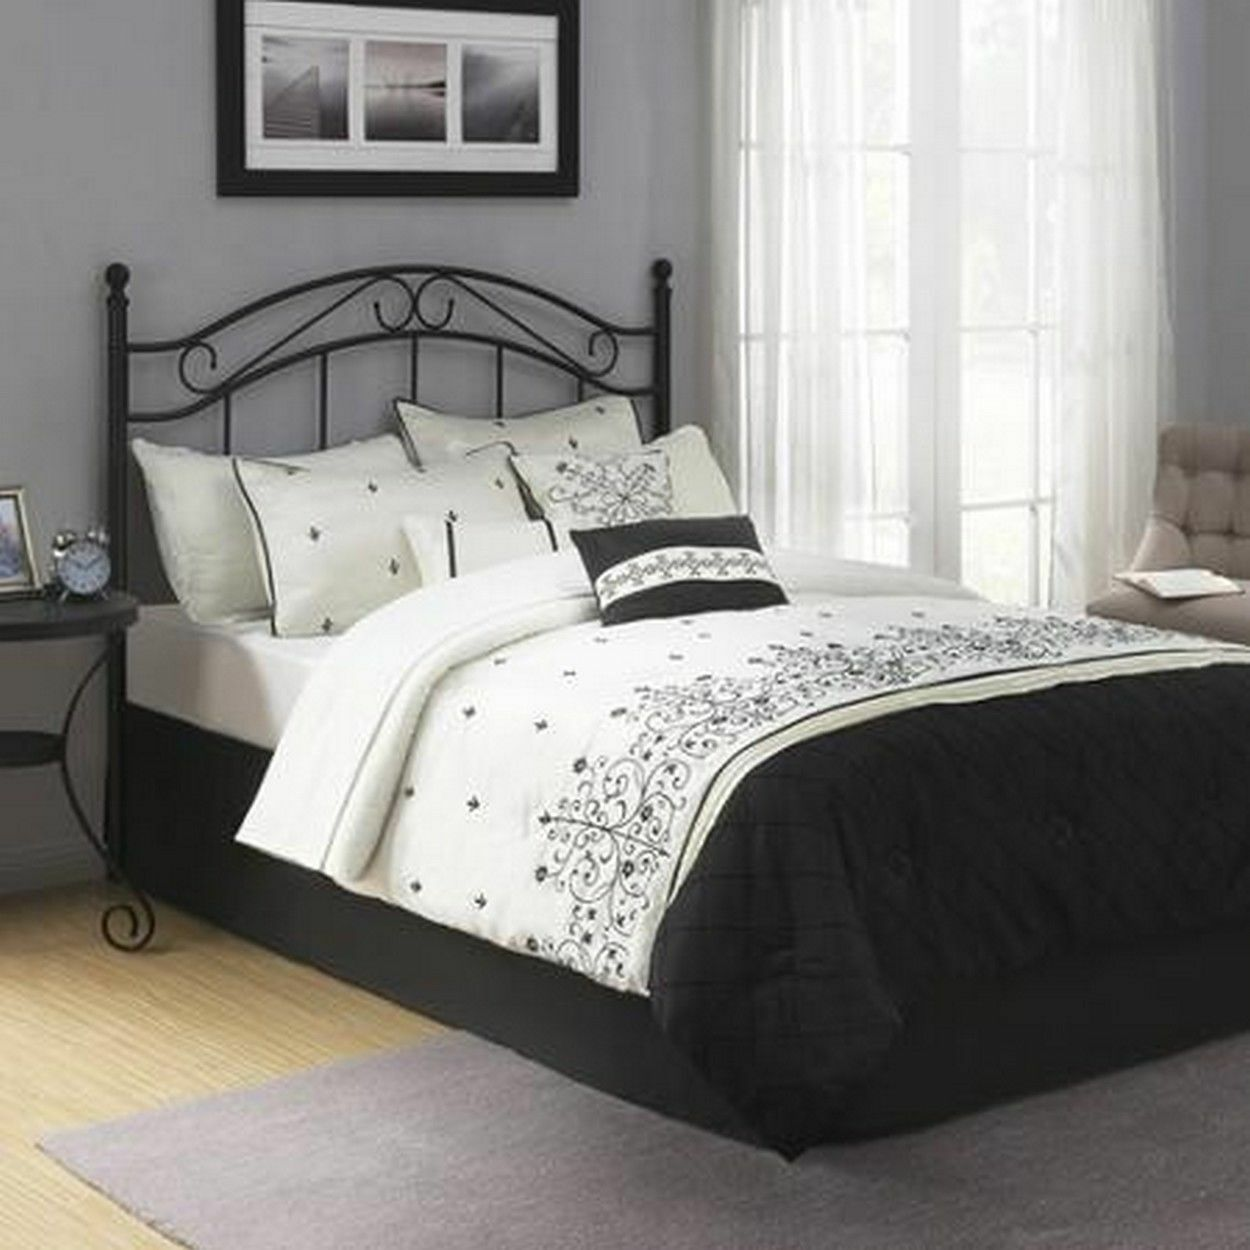 Traditional Black Metal Headboard Full Queen Size Bed Frame Bedroom Furniture Furniture Beds Mattresses